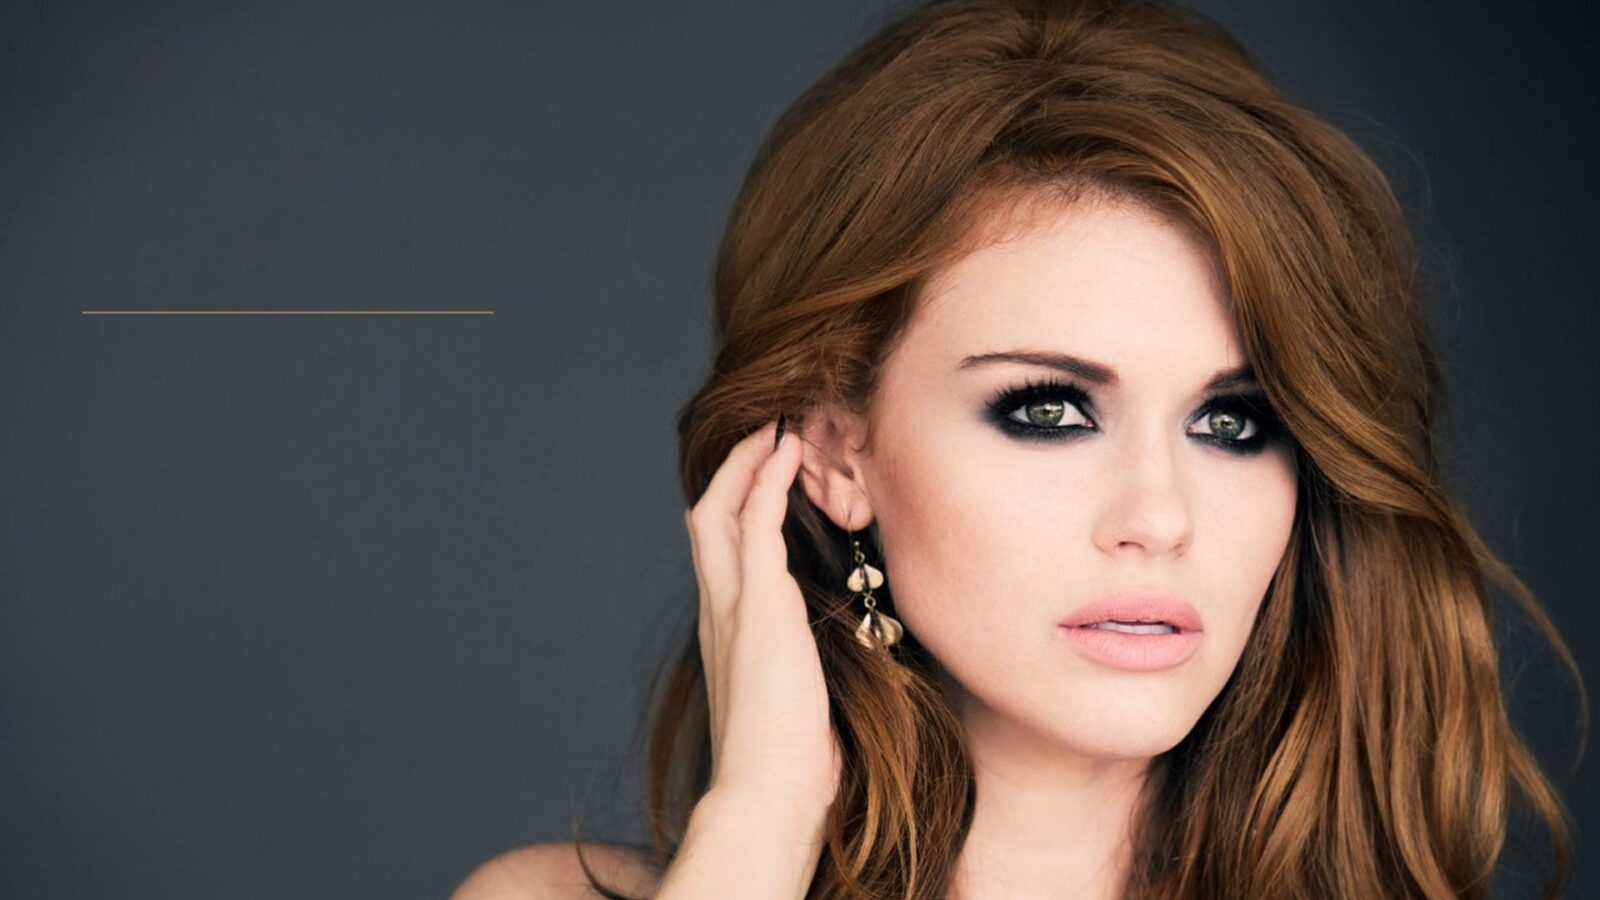 Wallpaper of Holland Roden eyes for Laptop